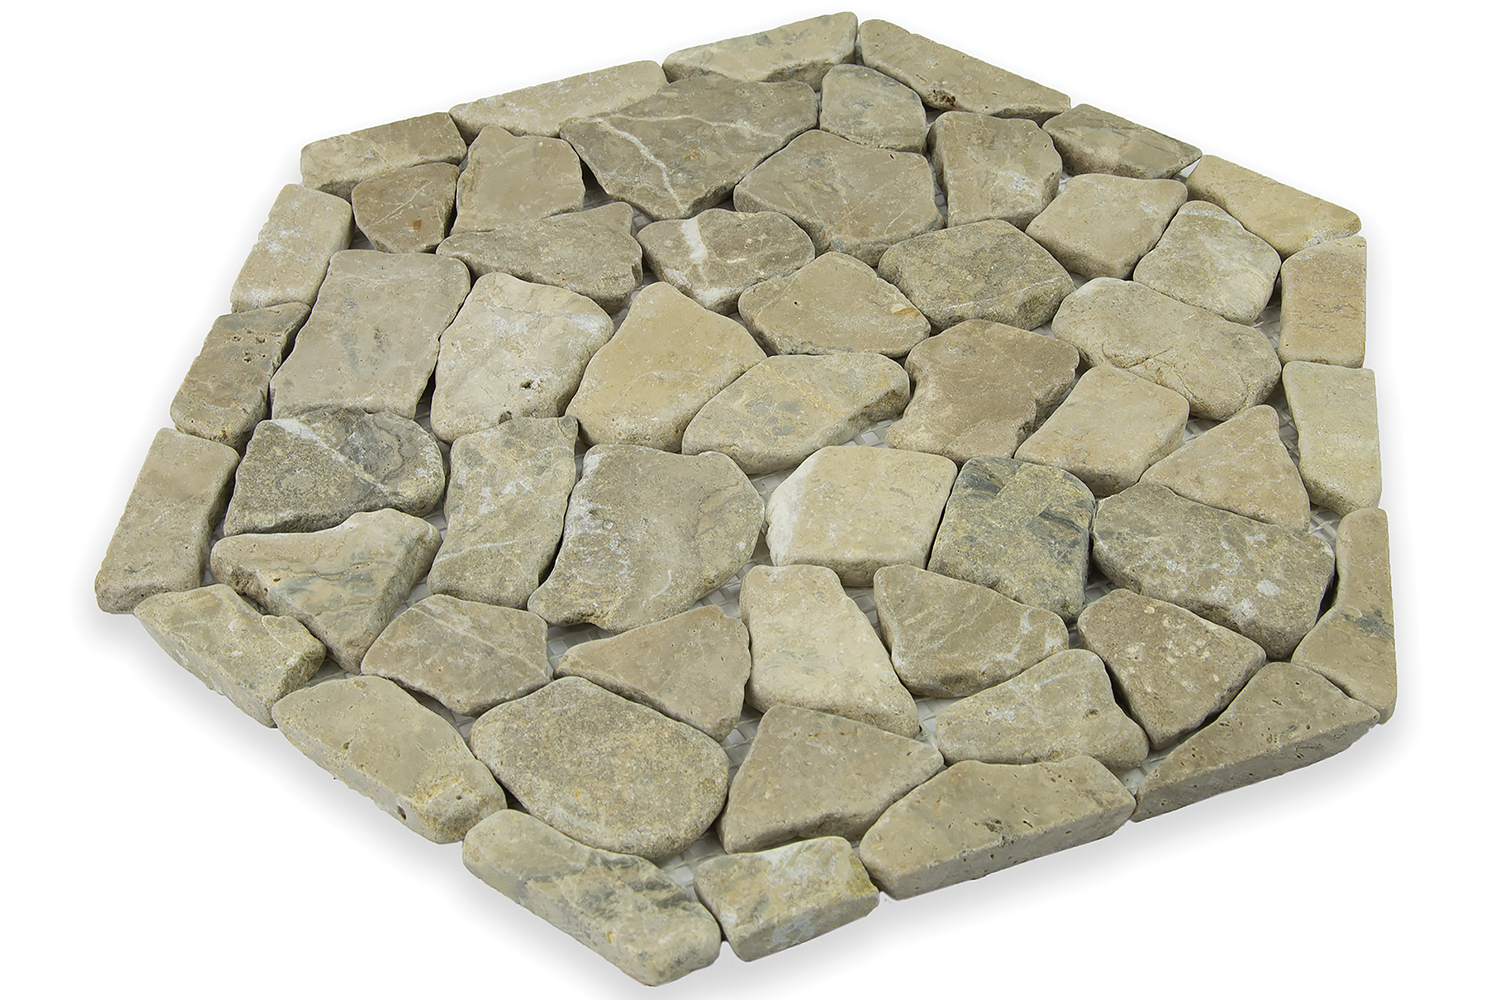 The pieces can be used for walls and floors, indoors and outdoors, and are also ideal for larger expanses and applications.